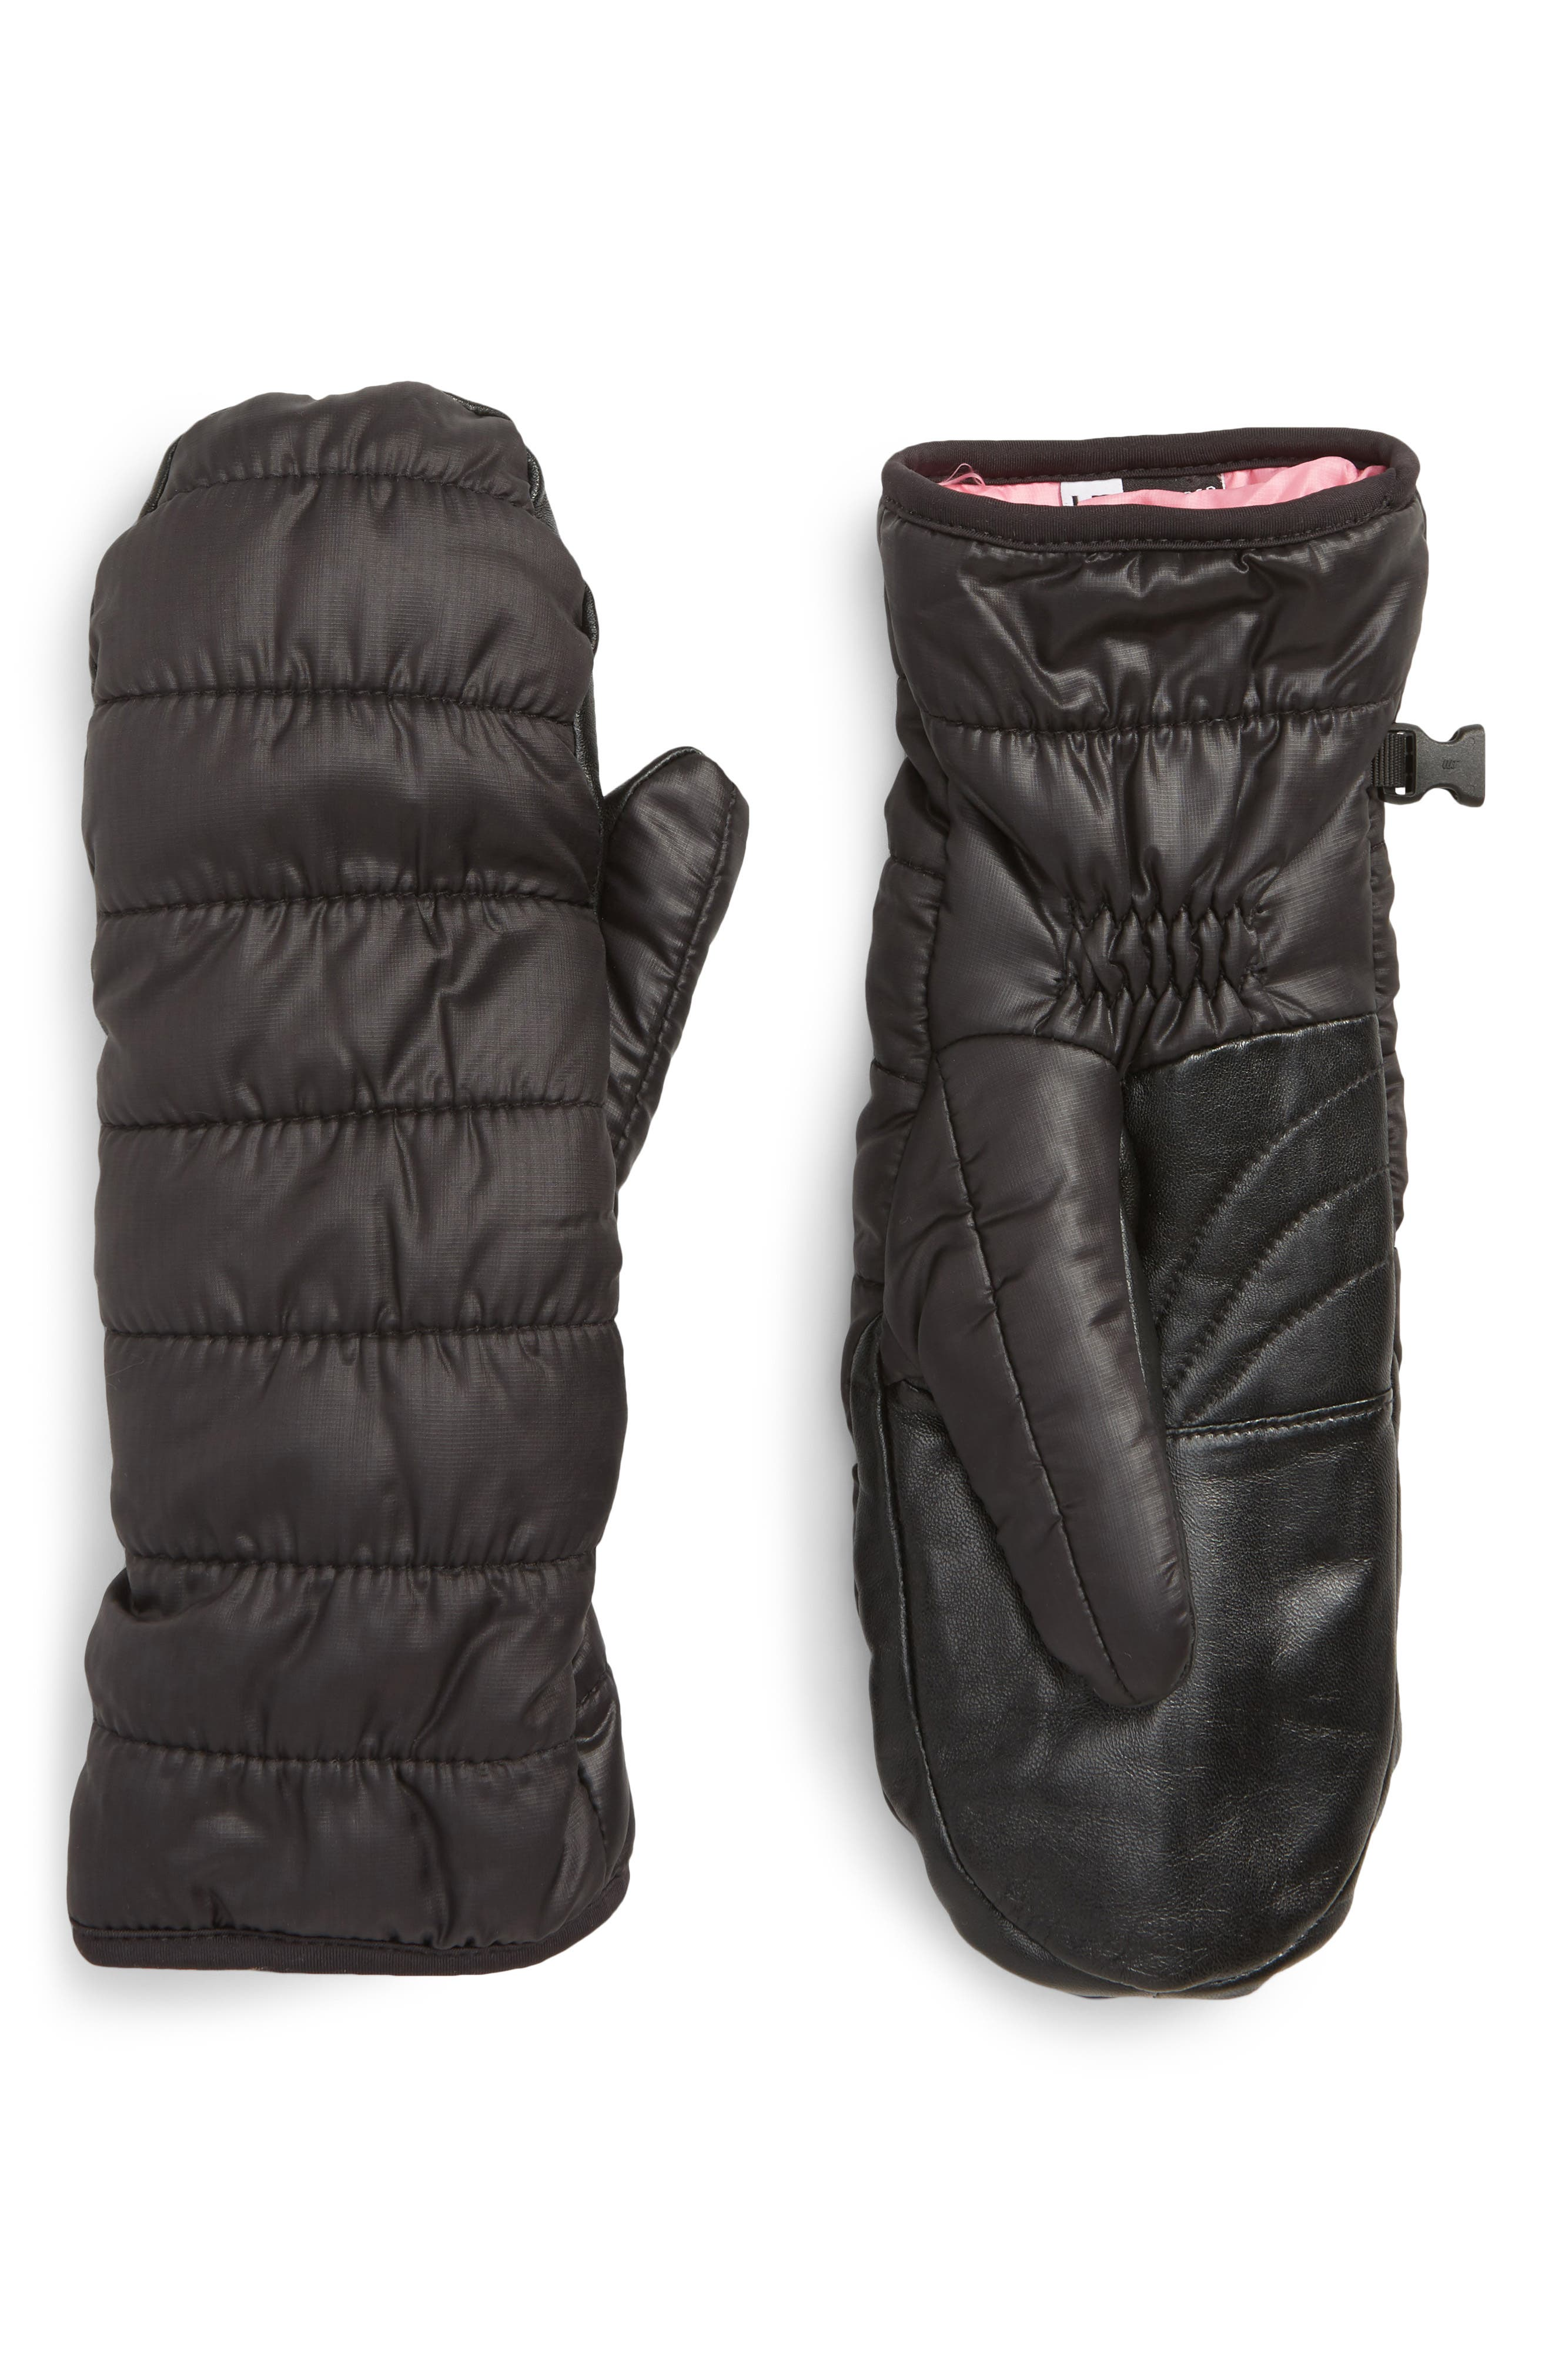 Extreme Cold Weather Touchscreen-Compatible Mittens,                             Main thumbnail 1, color,                             BLACK